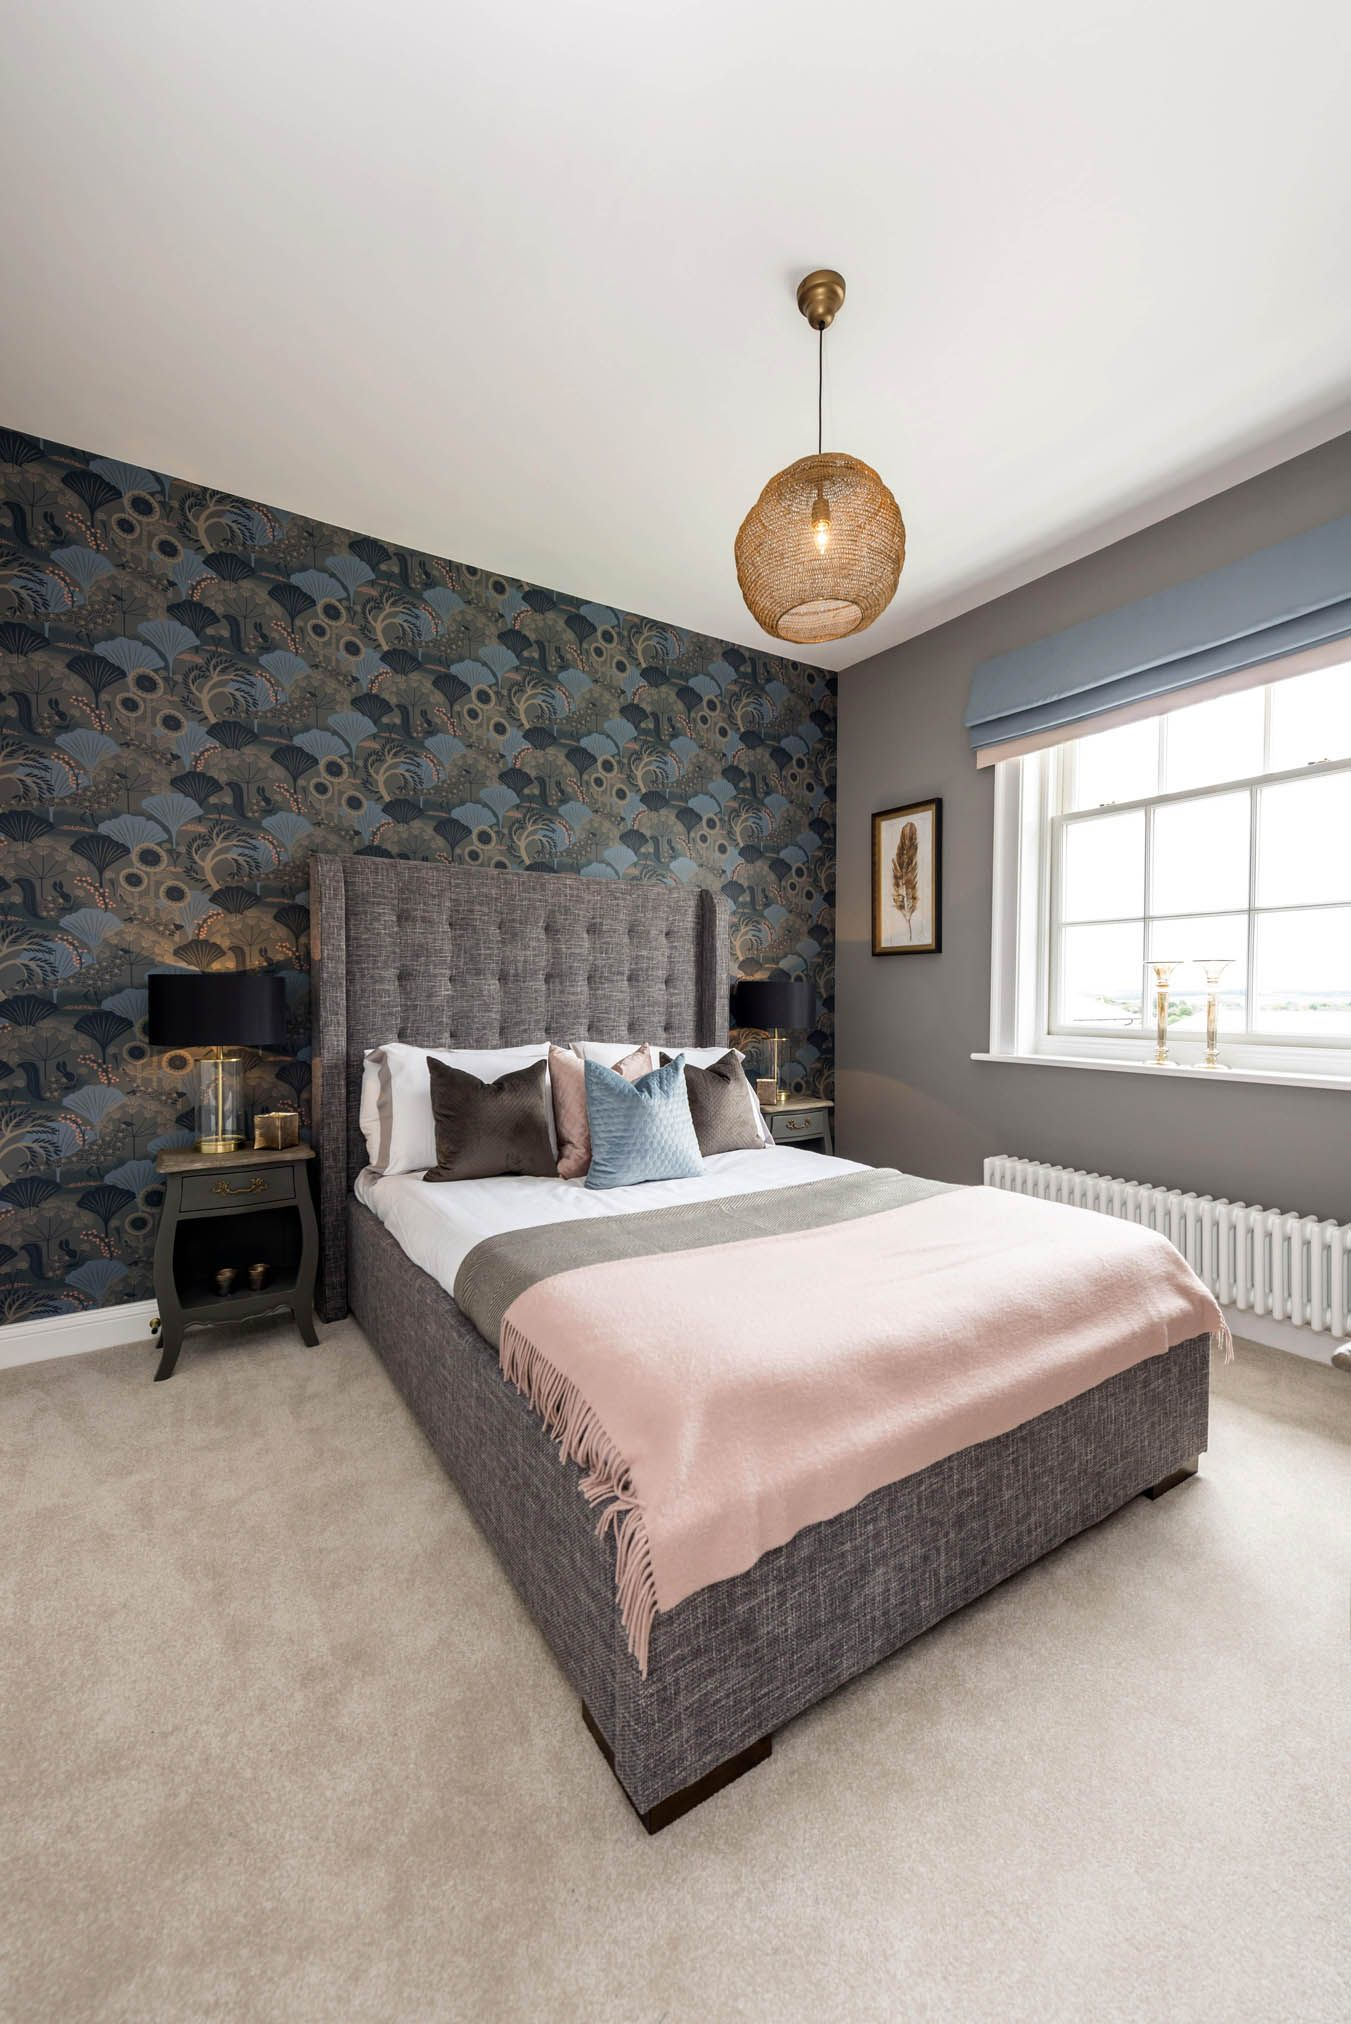 Best Blush Blue And Mink Colour Scheme For A Guest Bedroom 400 x 300